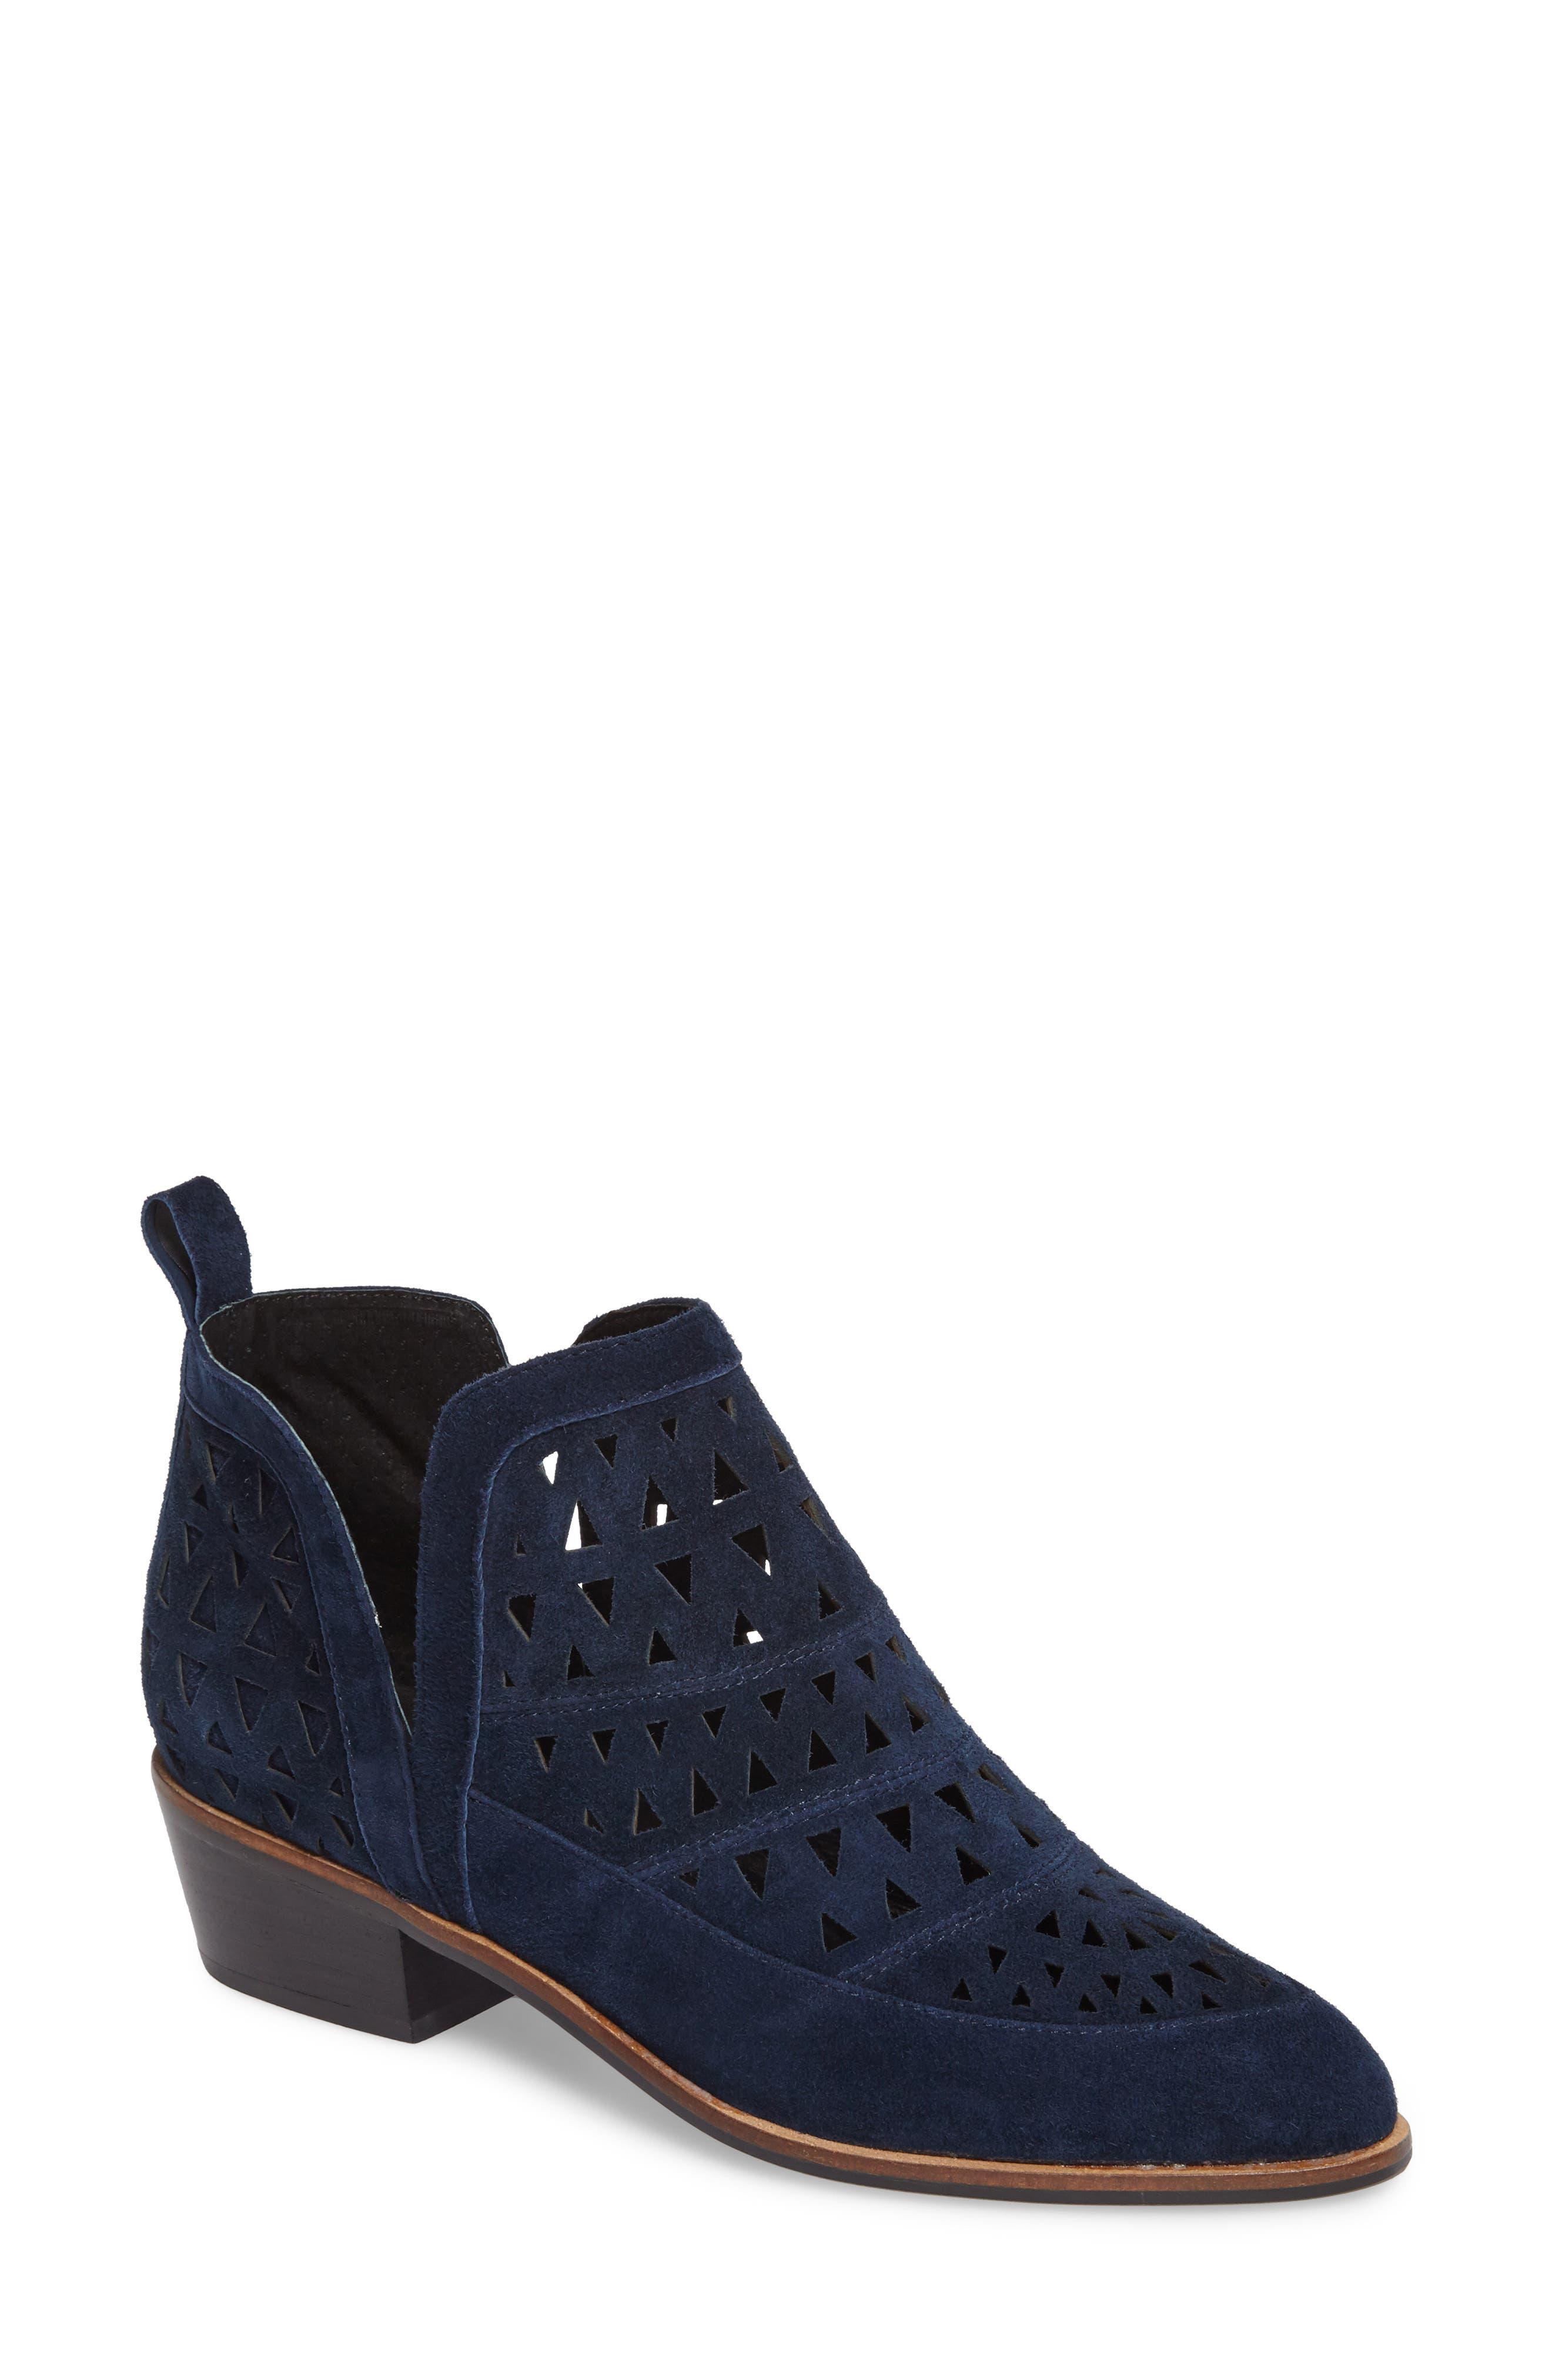 Alternate Image 1 Selected - Cecelia New York Catherine Cutout Bootie (Women)